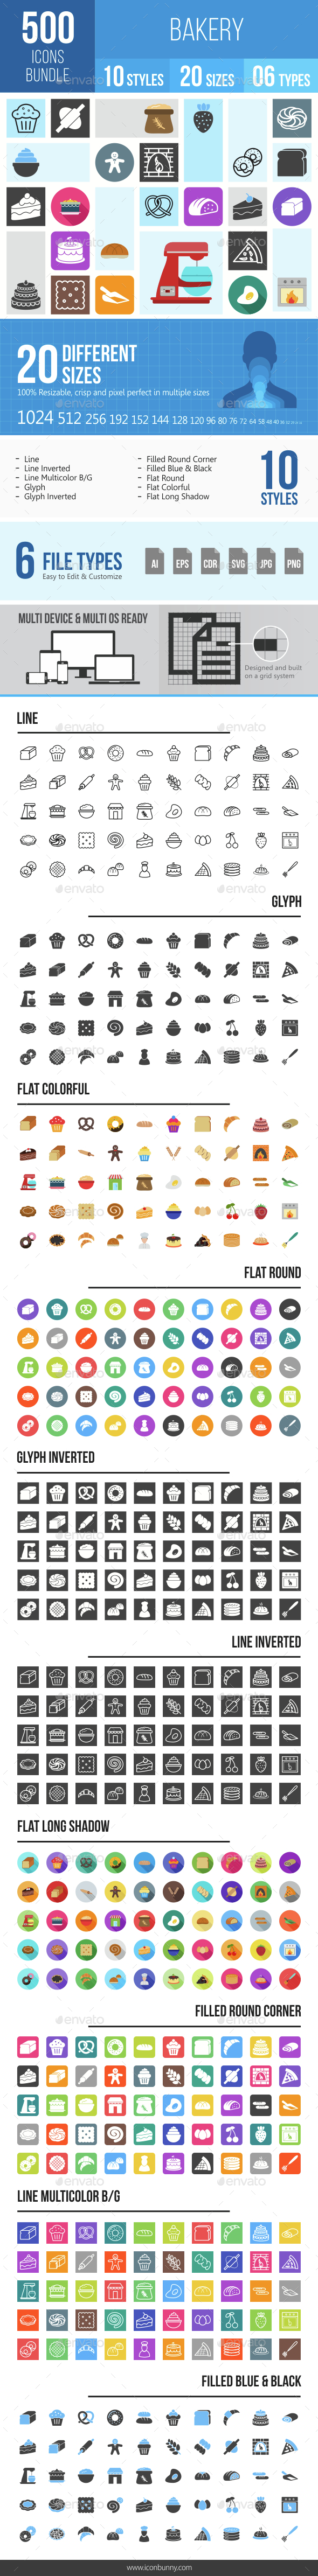 500 Bakery Icons Bundle - Icons